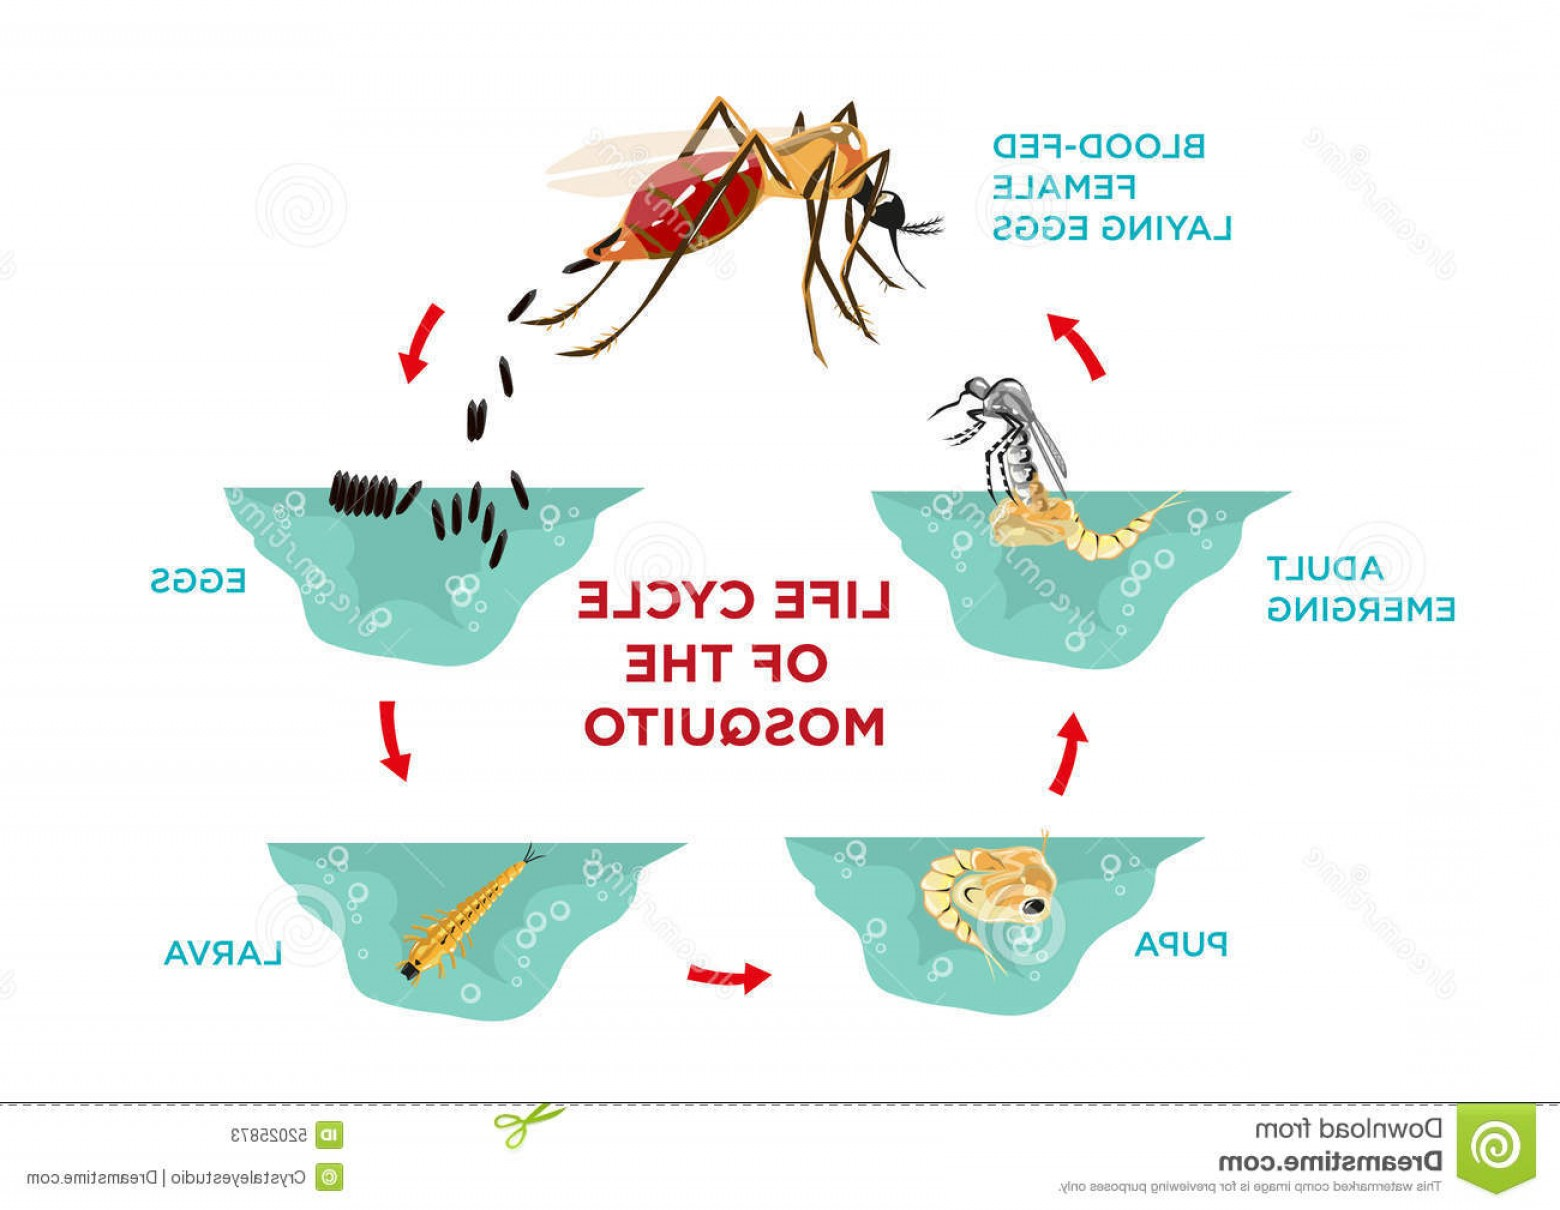 Mosquito Vector Worksheet: Life Cycle Of The Mosquito Illustration